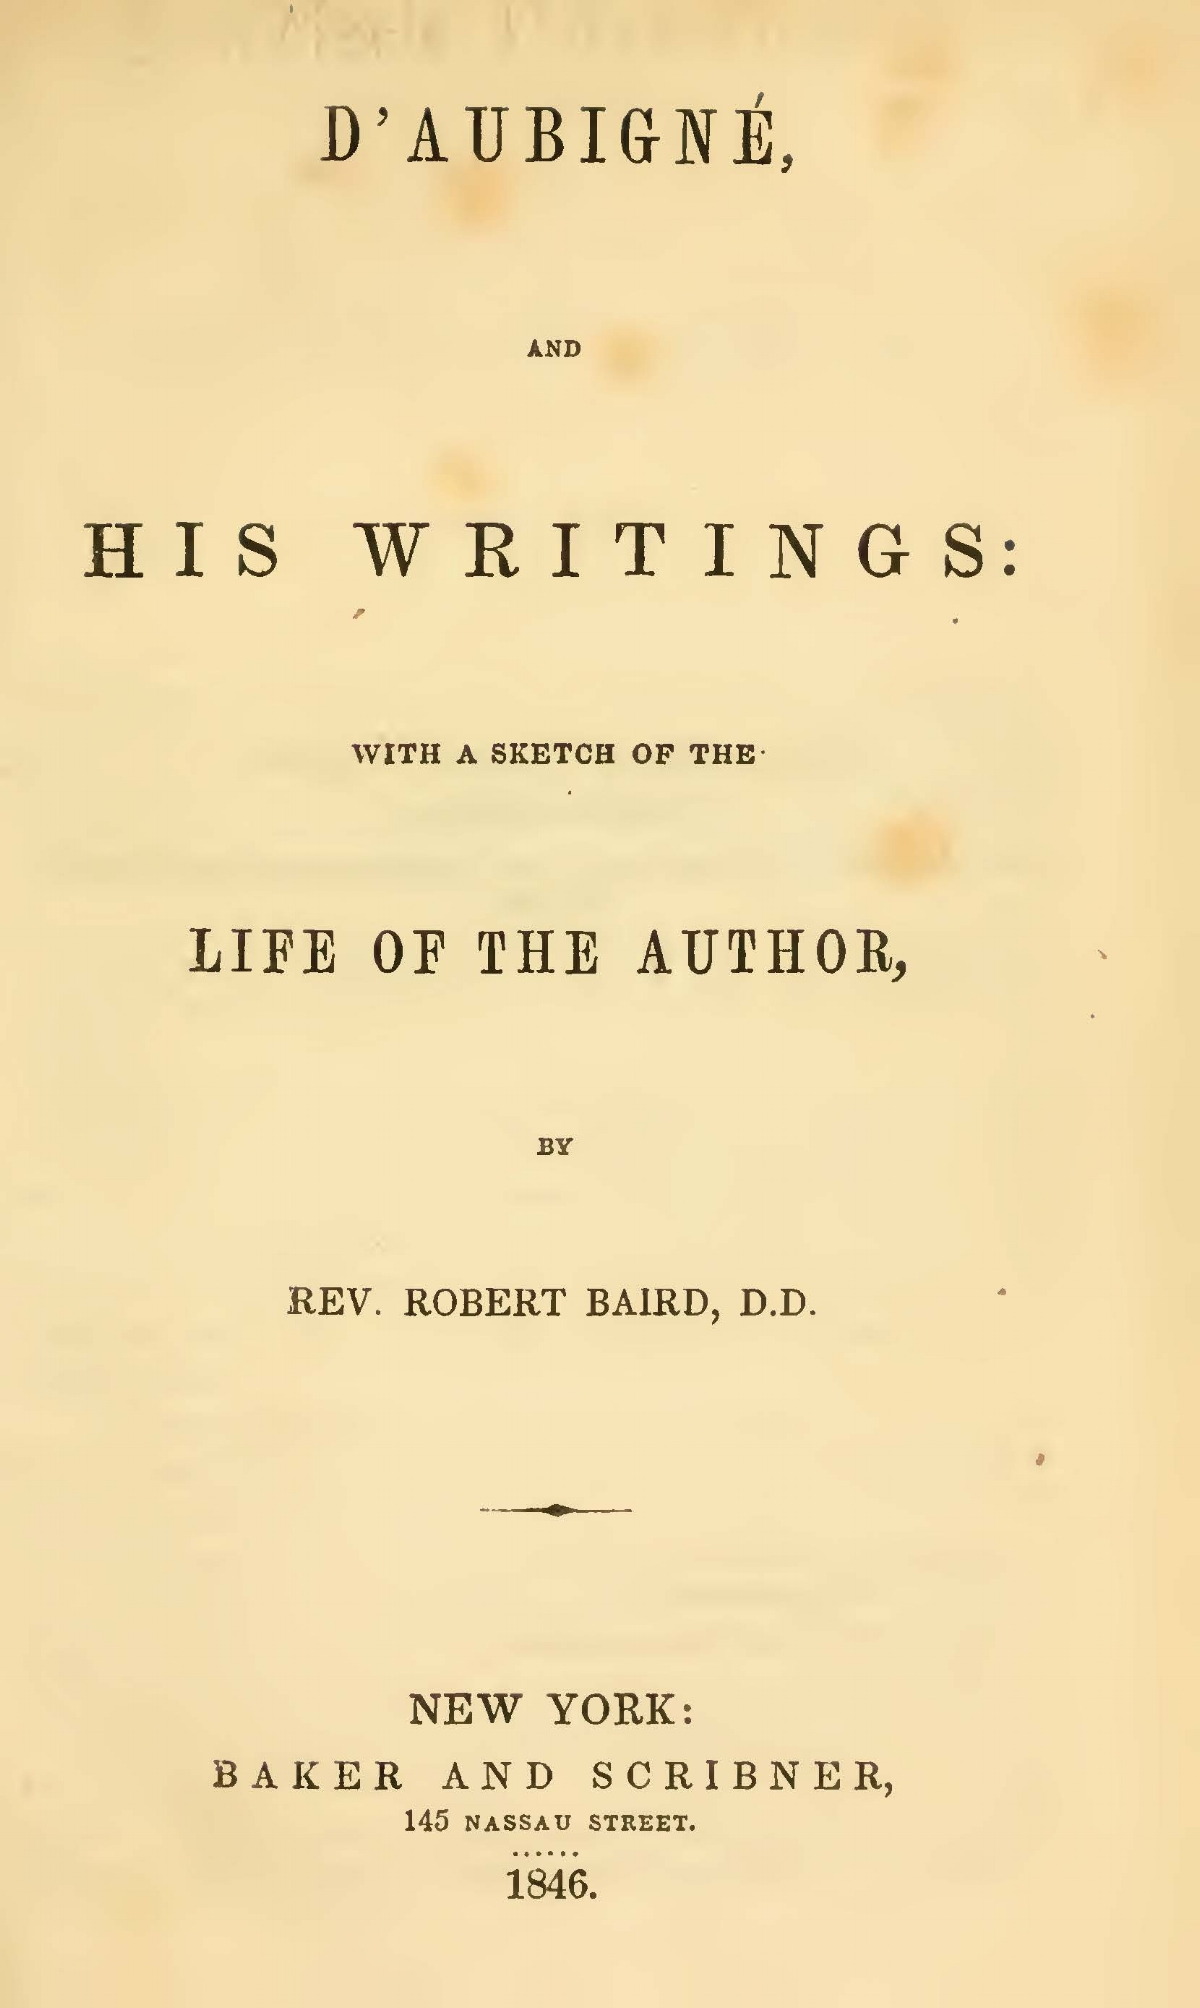 Baird, Robert, D'Aubigné and His Writings Title Page.jpg